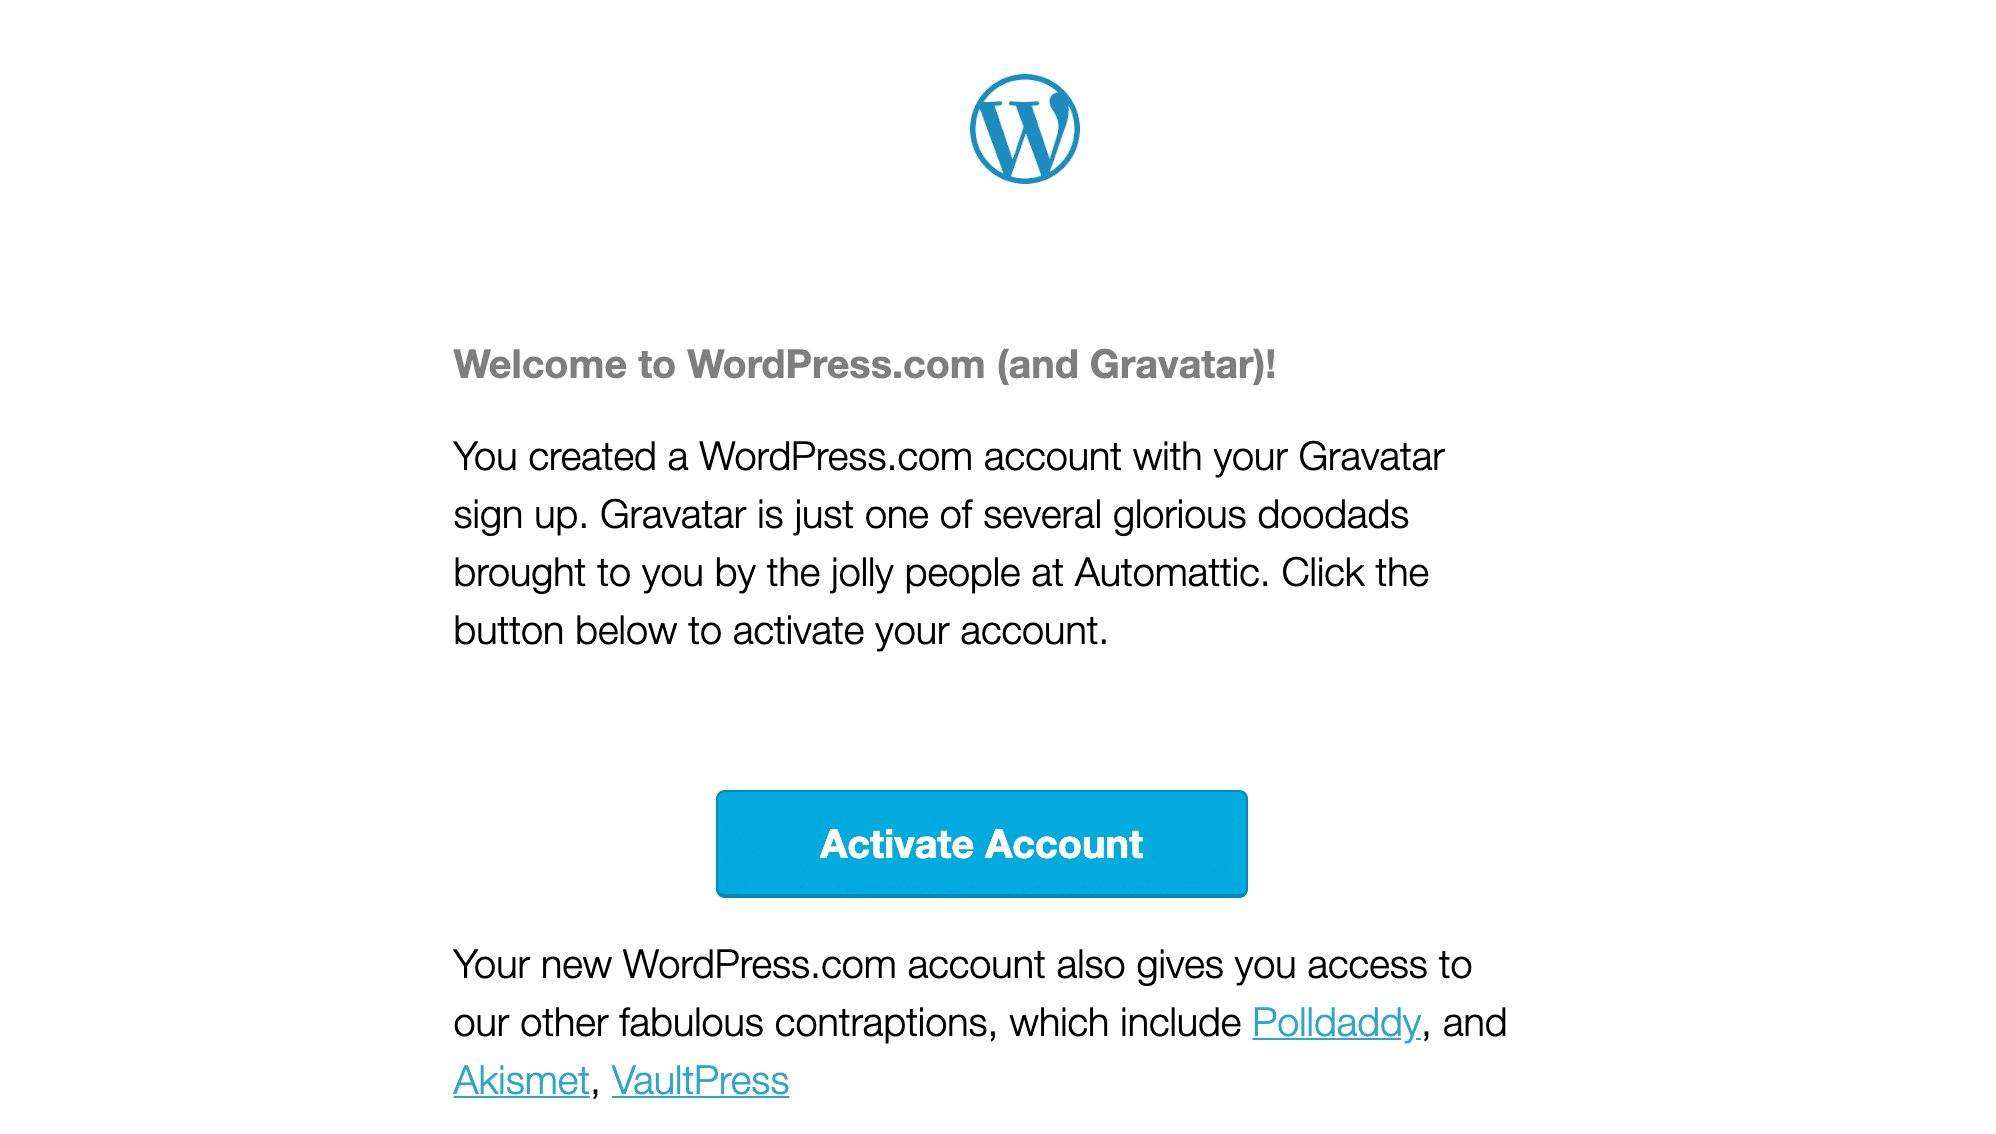 reate gravatar email to activate your wordpress gravatar account